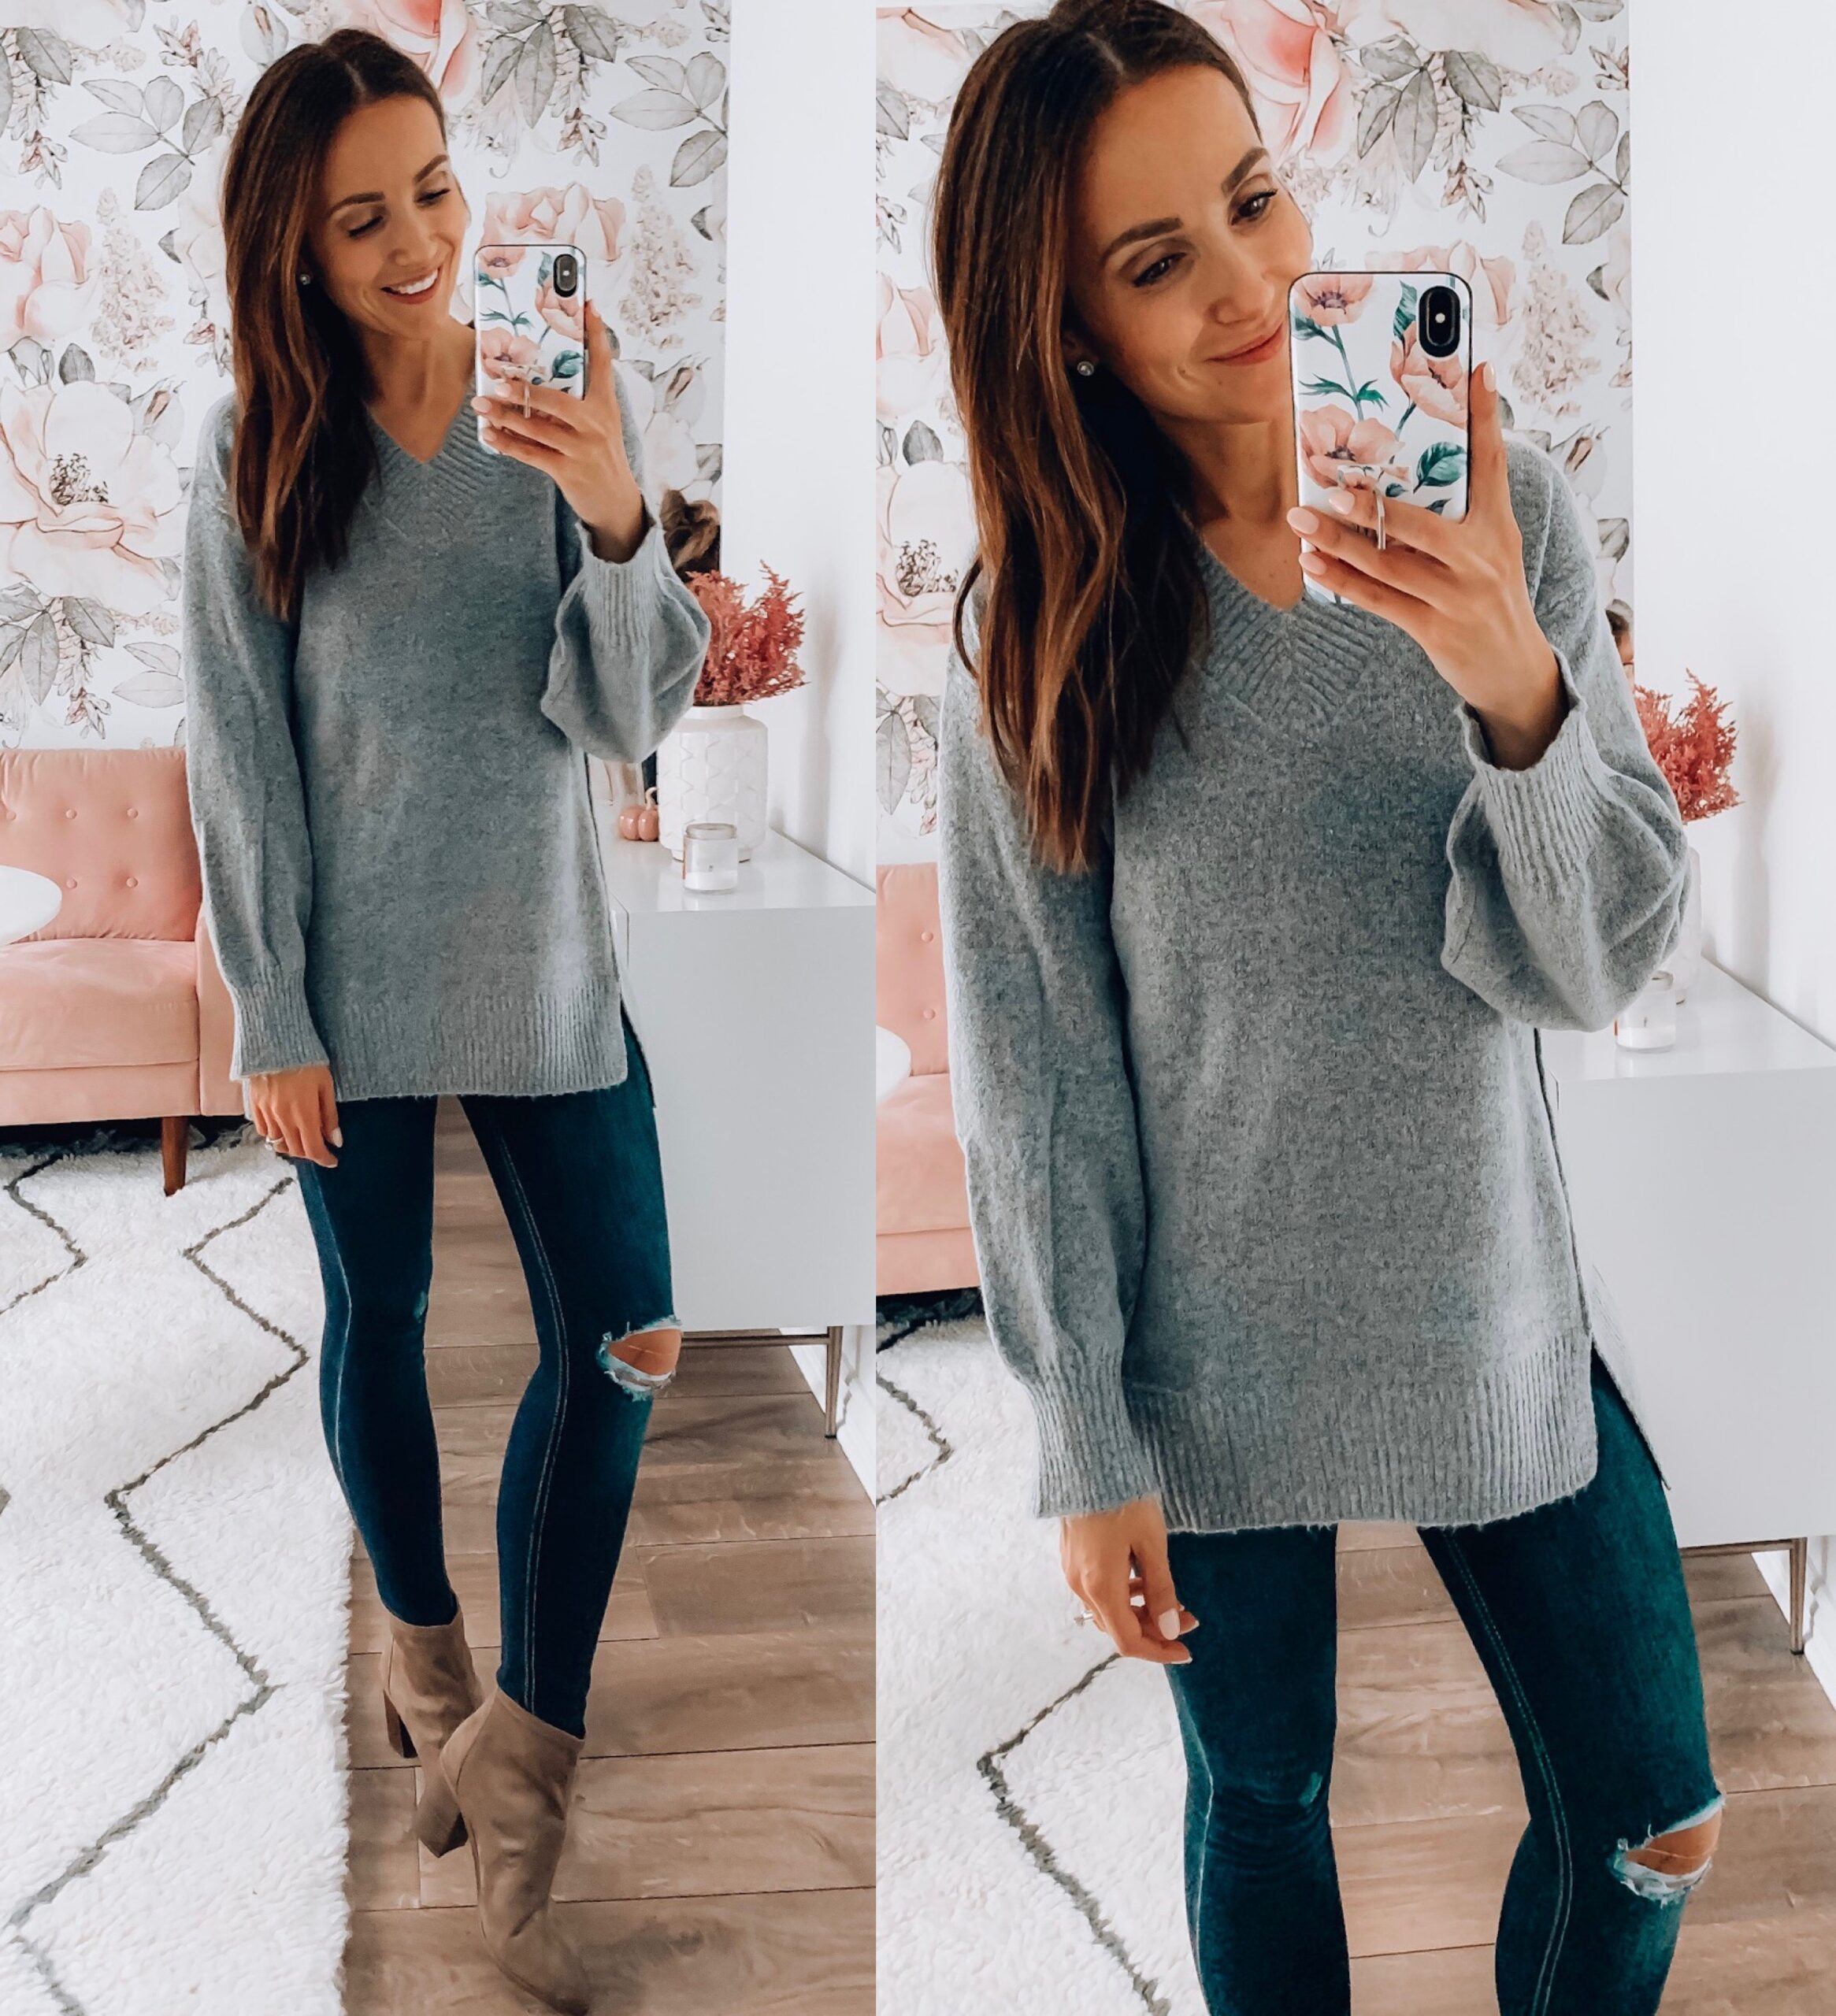 TUNIC SWEATER, JEANS